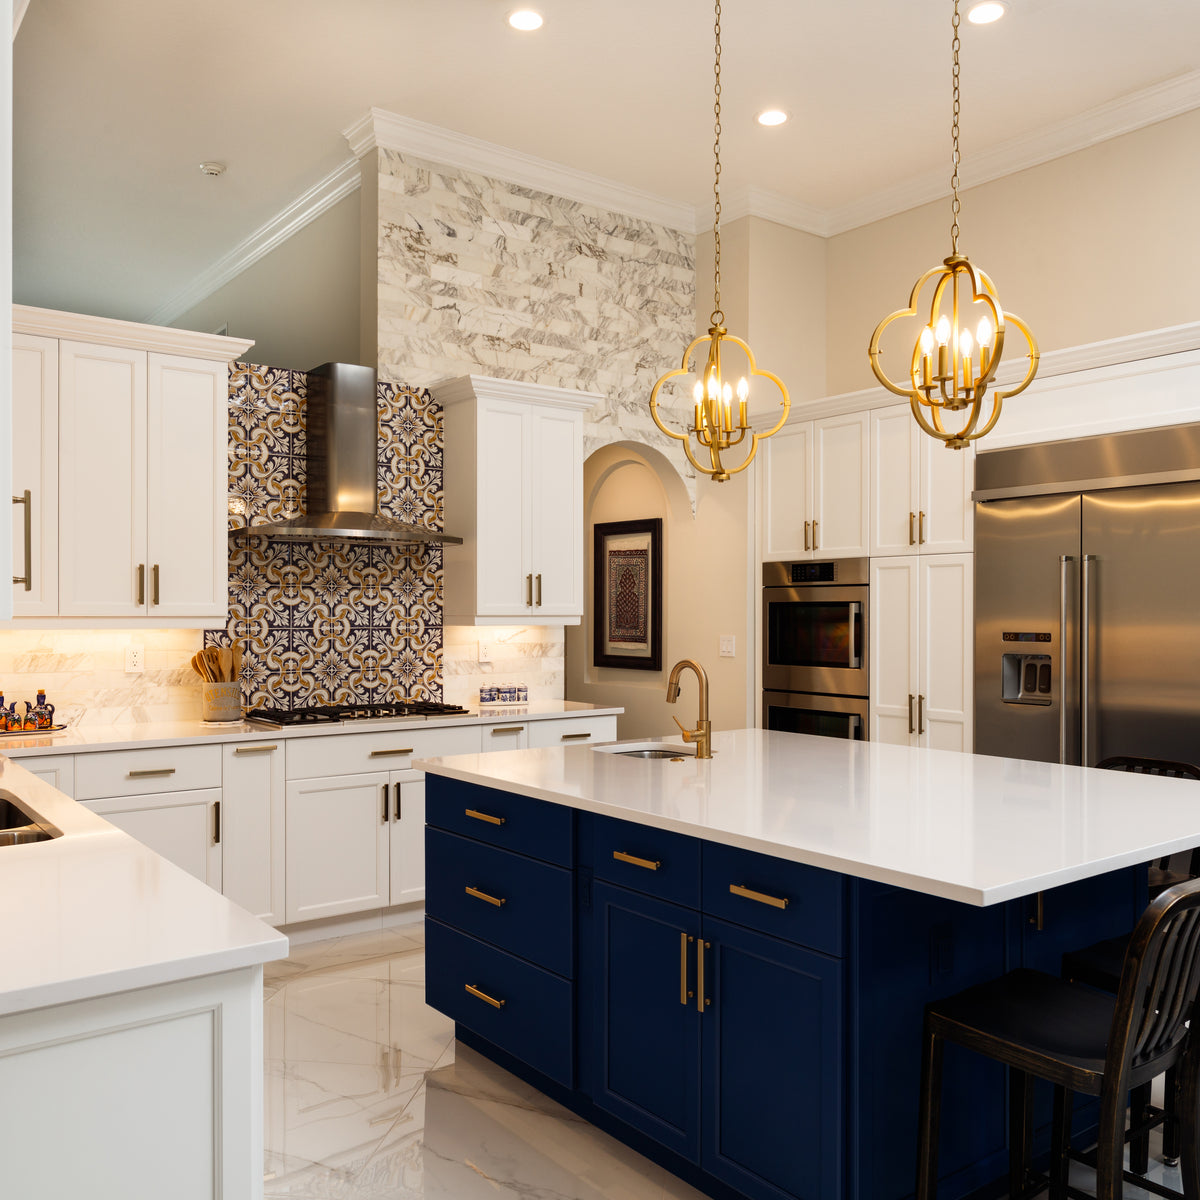 4 Color Trends for Kitchen Cabinets in 2020